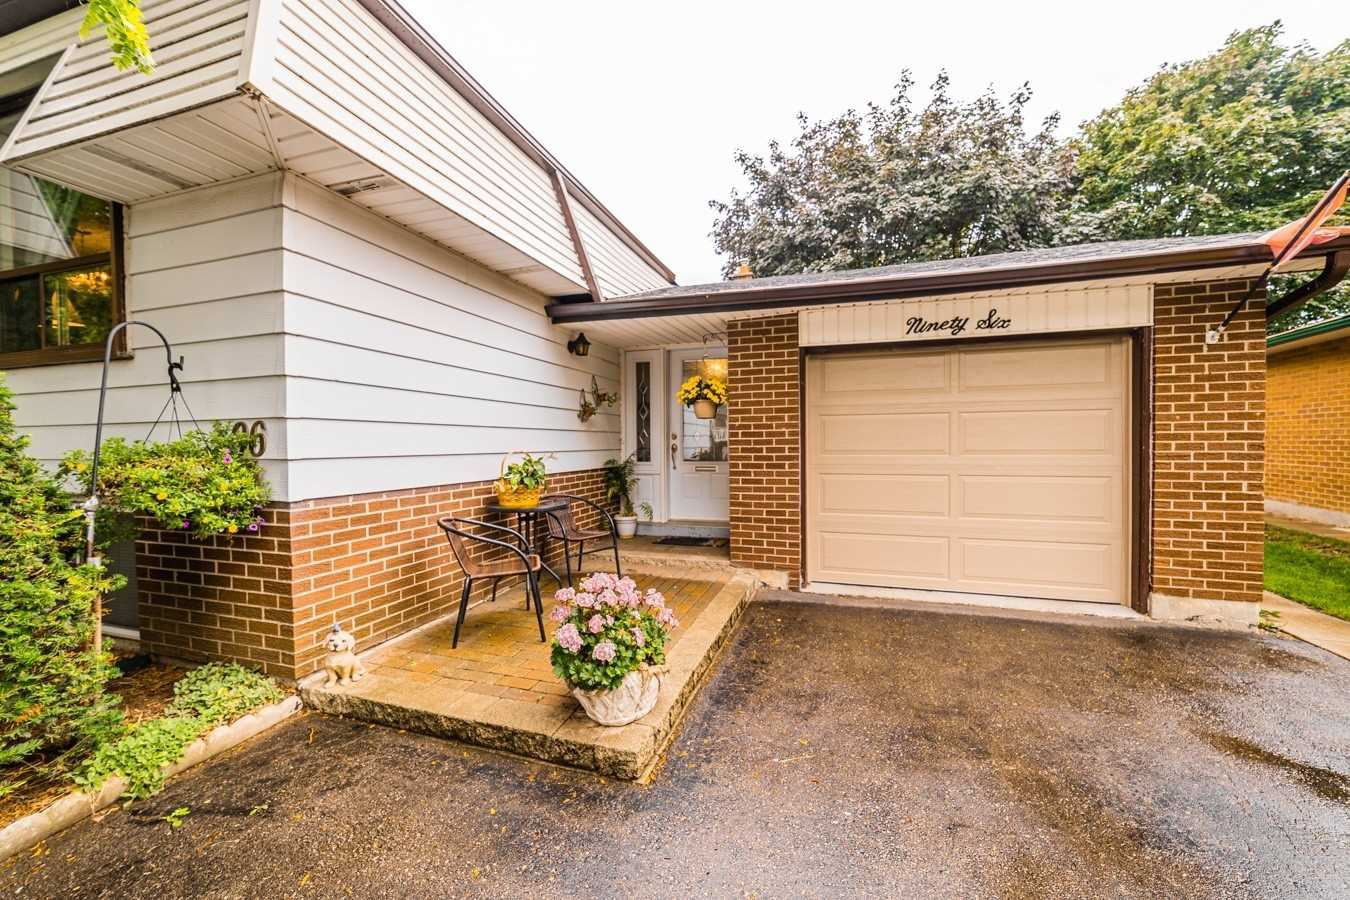 Photo of 96 Michael Blvd, Whitby, ON L1N 5T4 (MLS # E5324016)